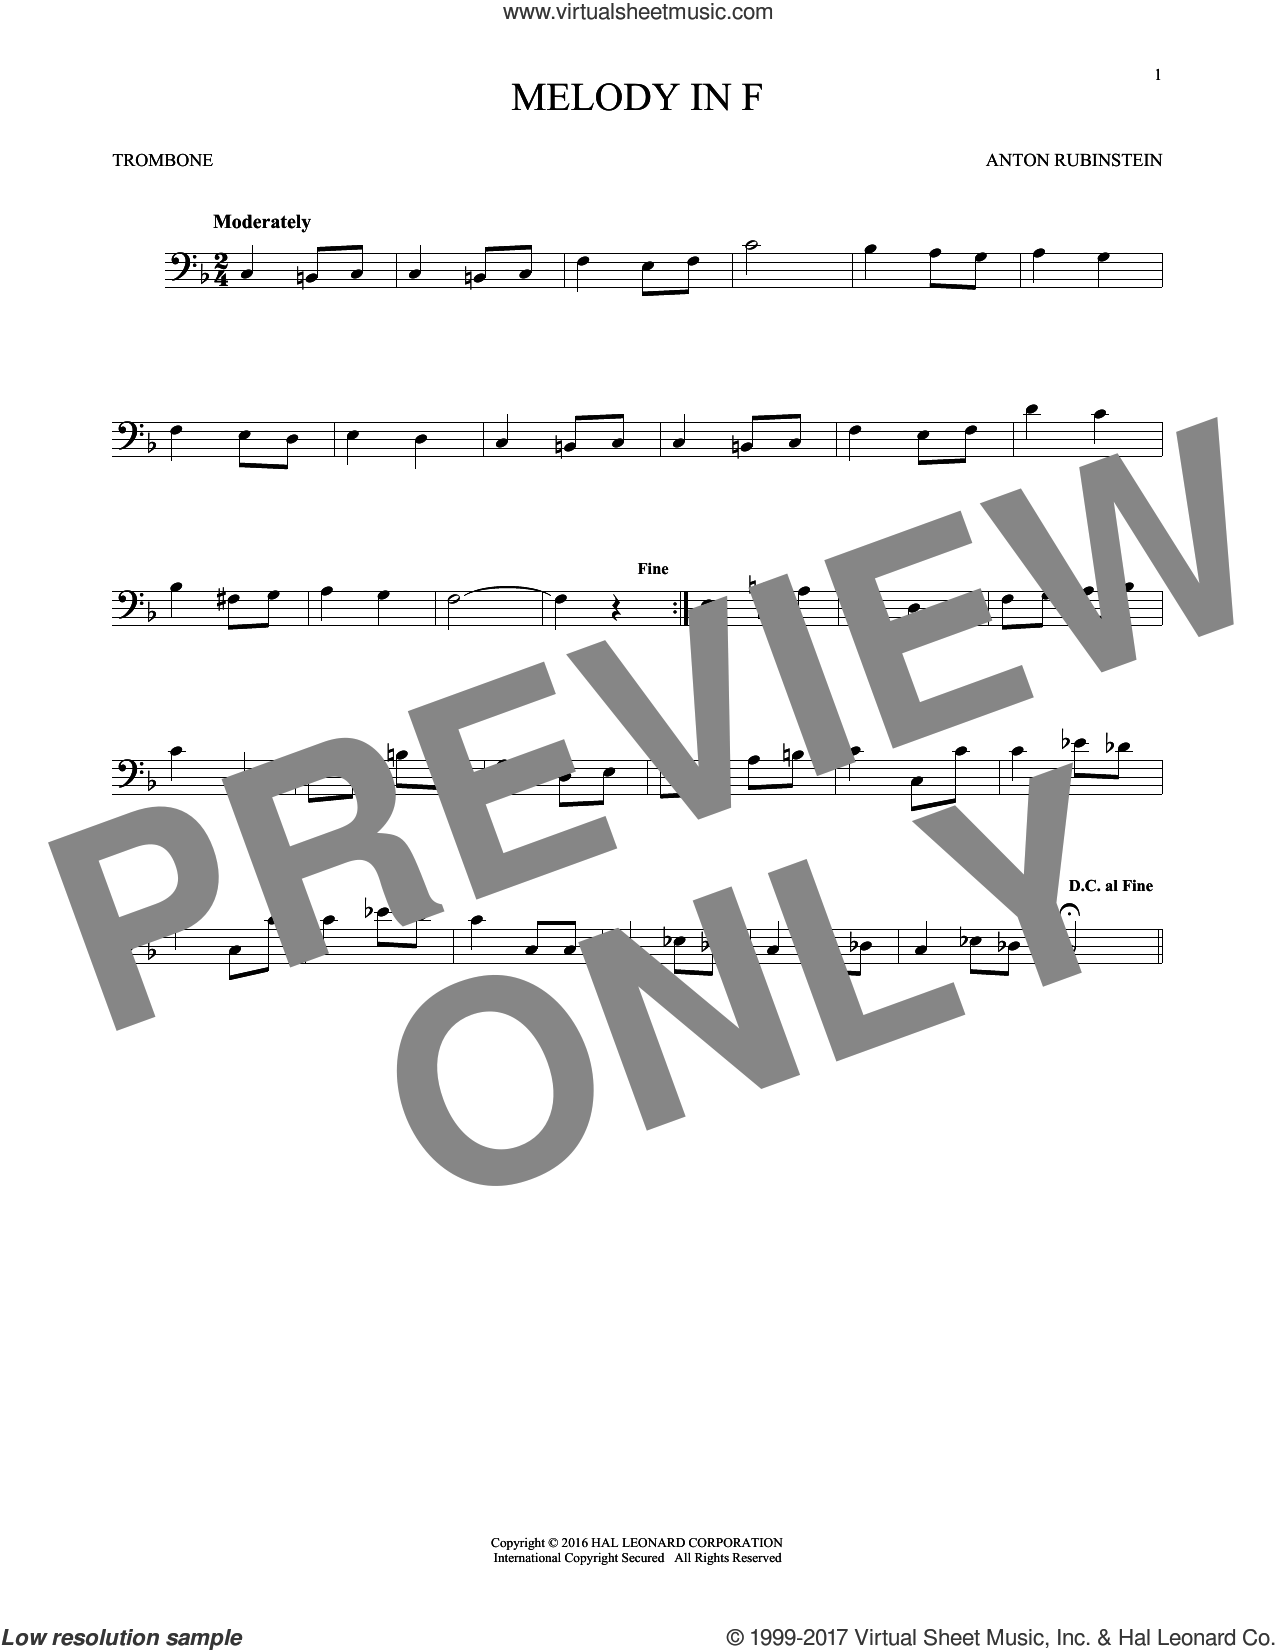 Melody In F sheet music for trombone solo by Anton Rubinstein, classical score, intermediate skill level